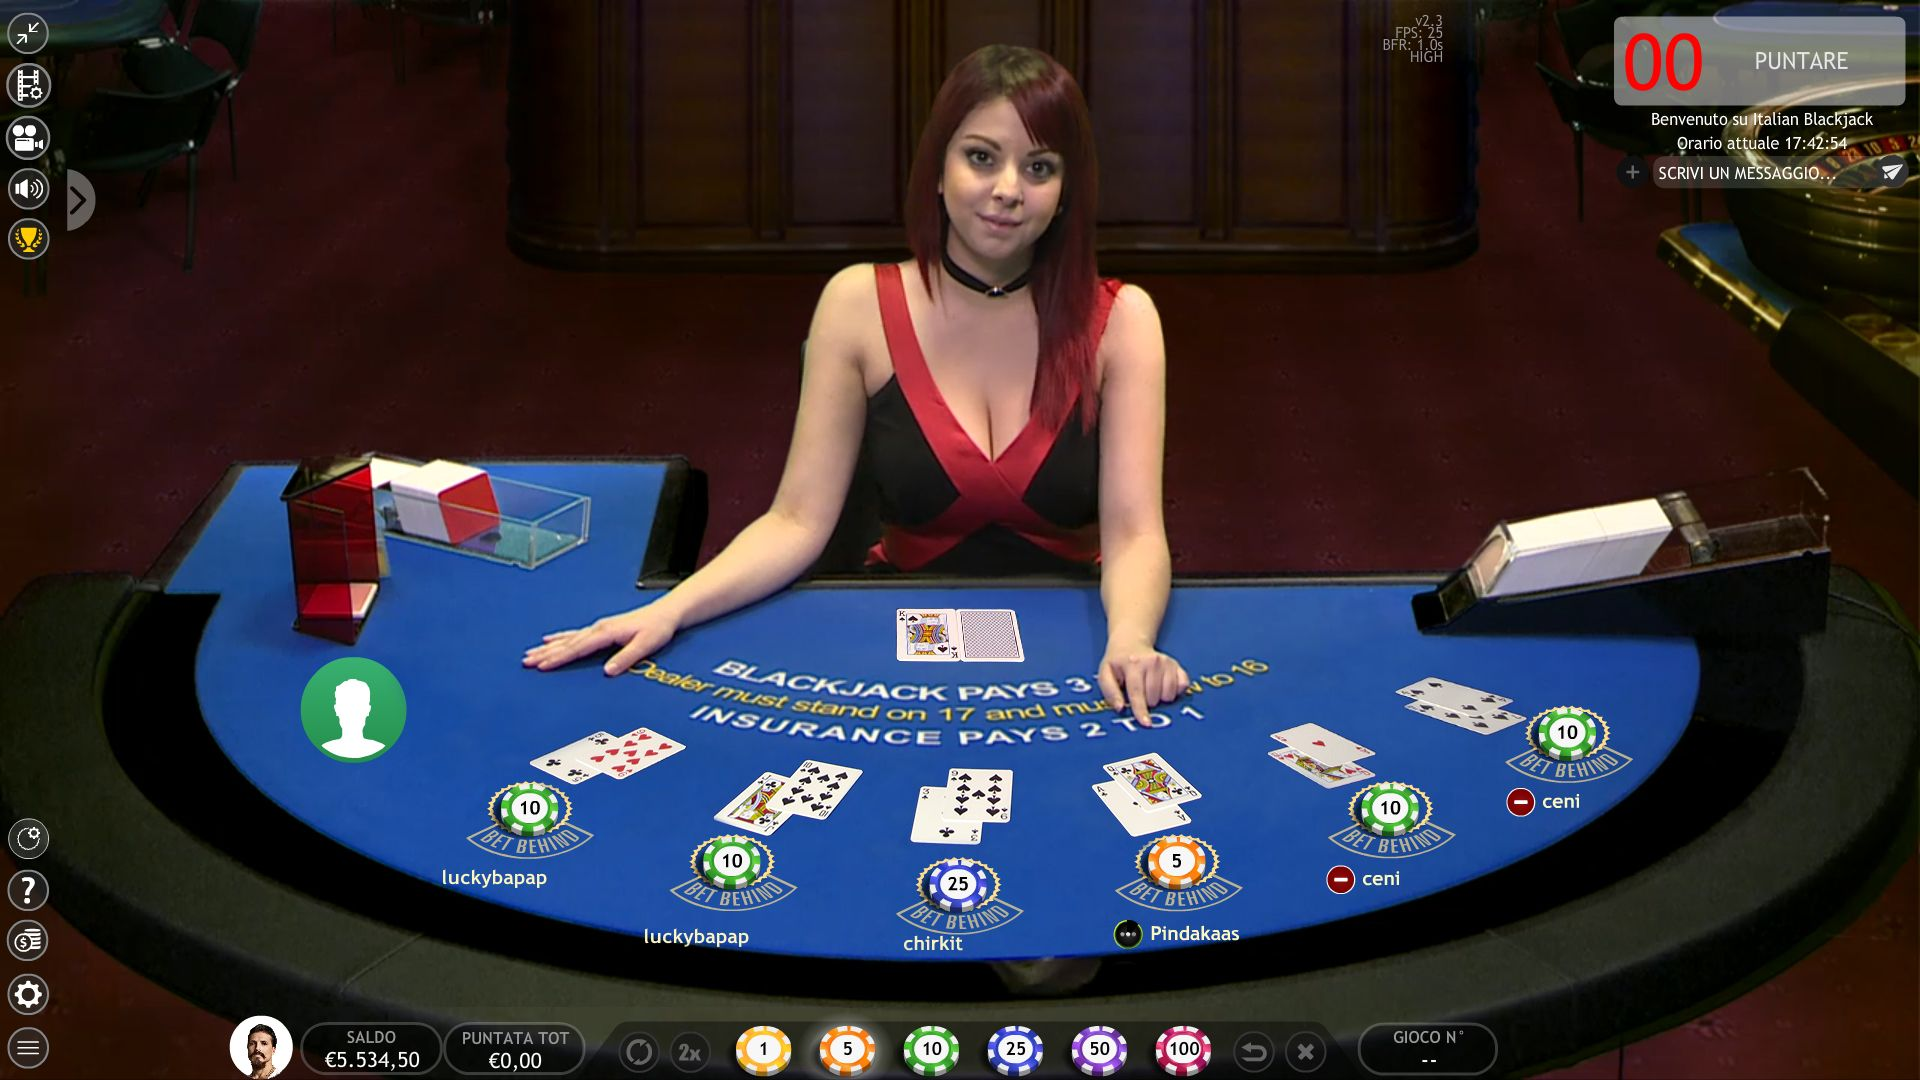 Top Online Live Casino in Singapore for June 2019